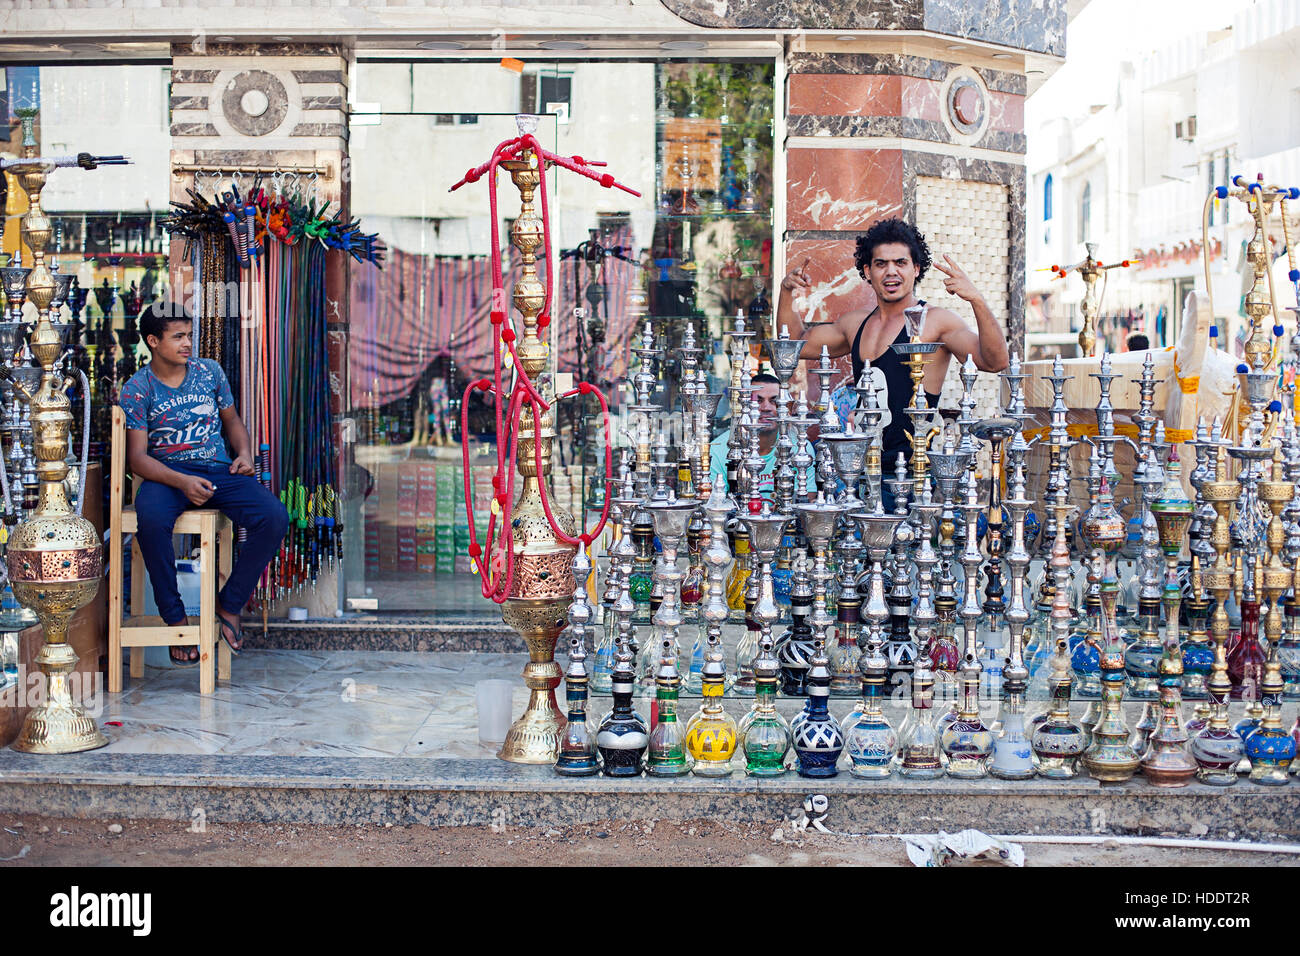 Turkish Store Mississauga Hookah Shop Stock Photos And Hookah Shop Stock Images Alamy